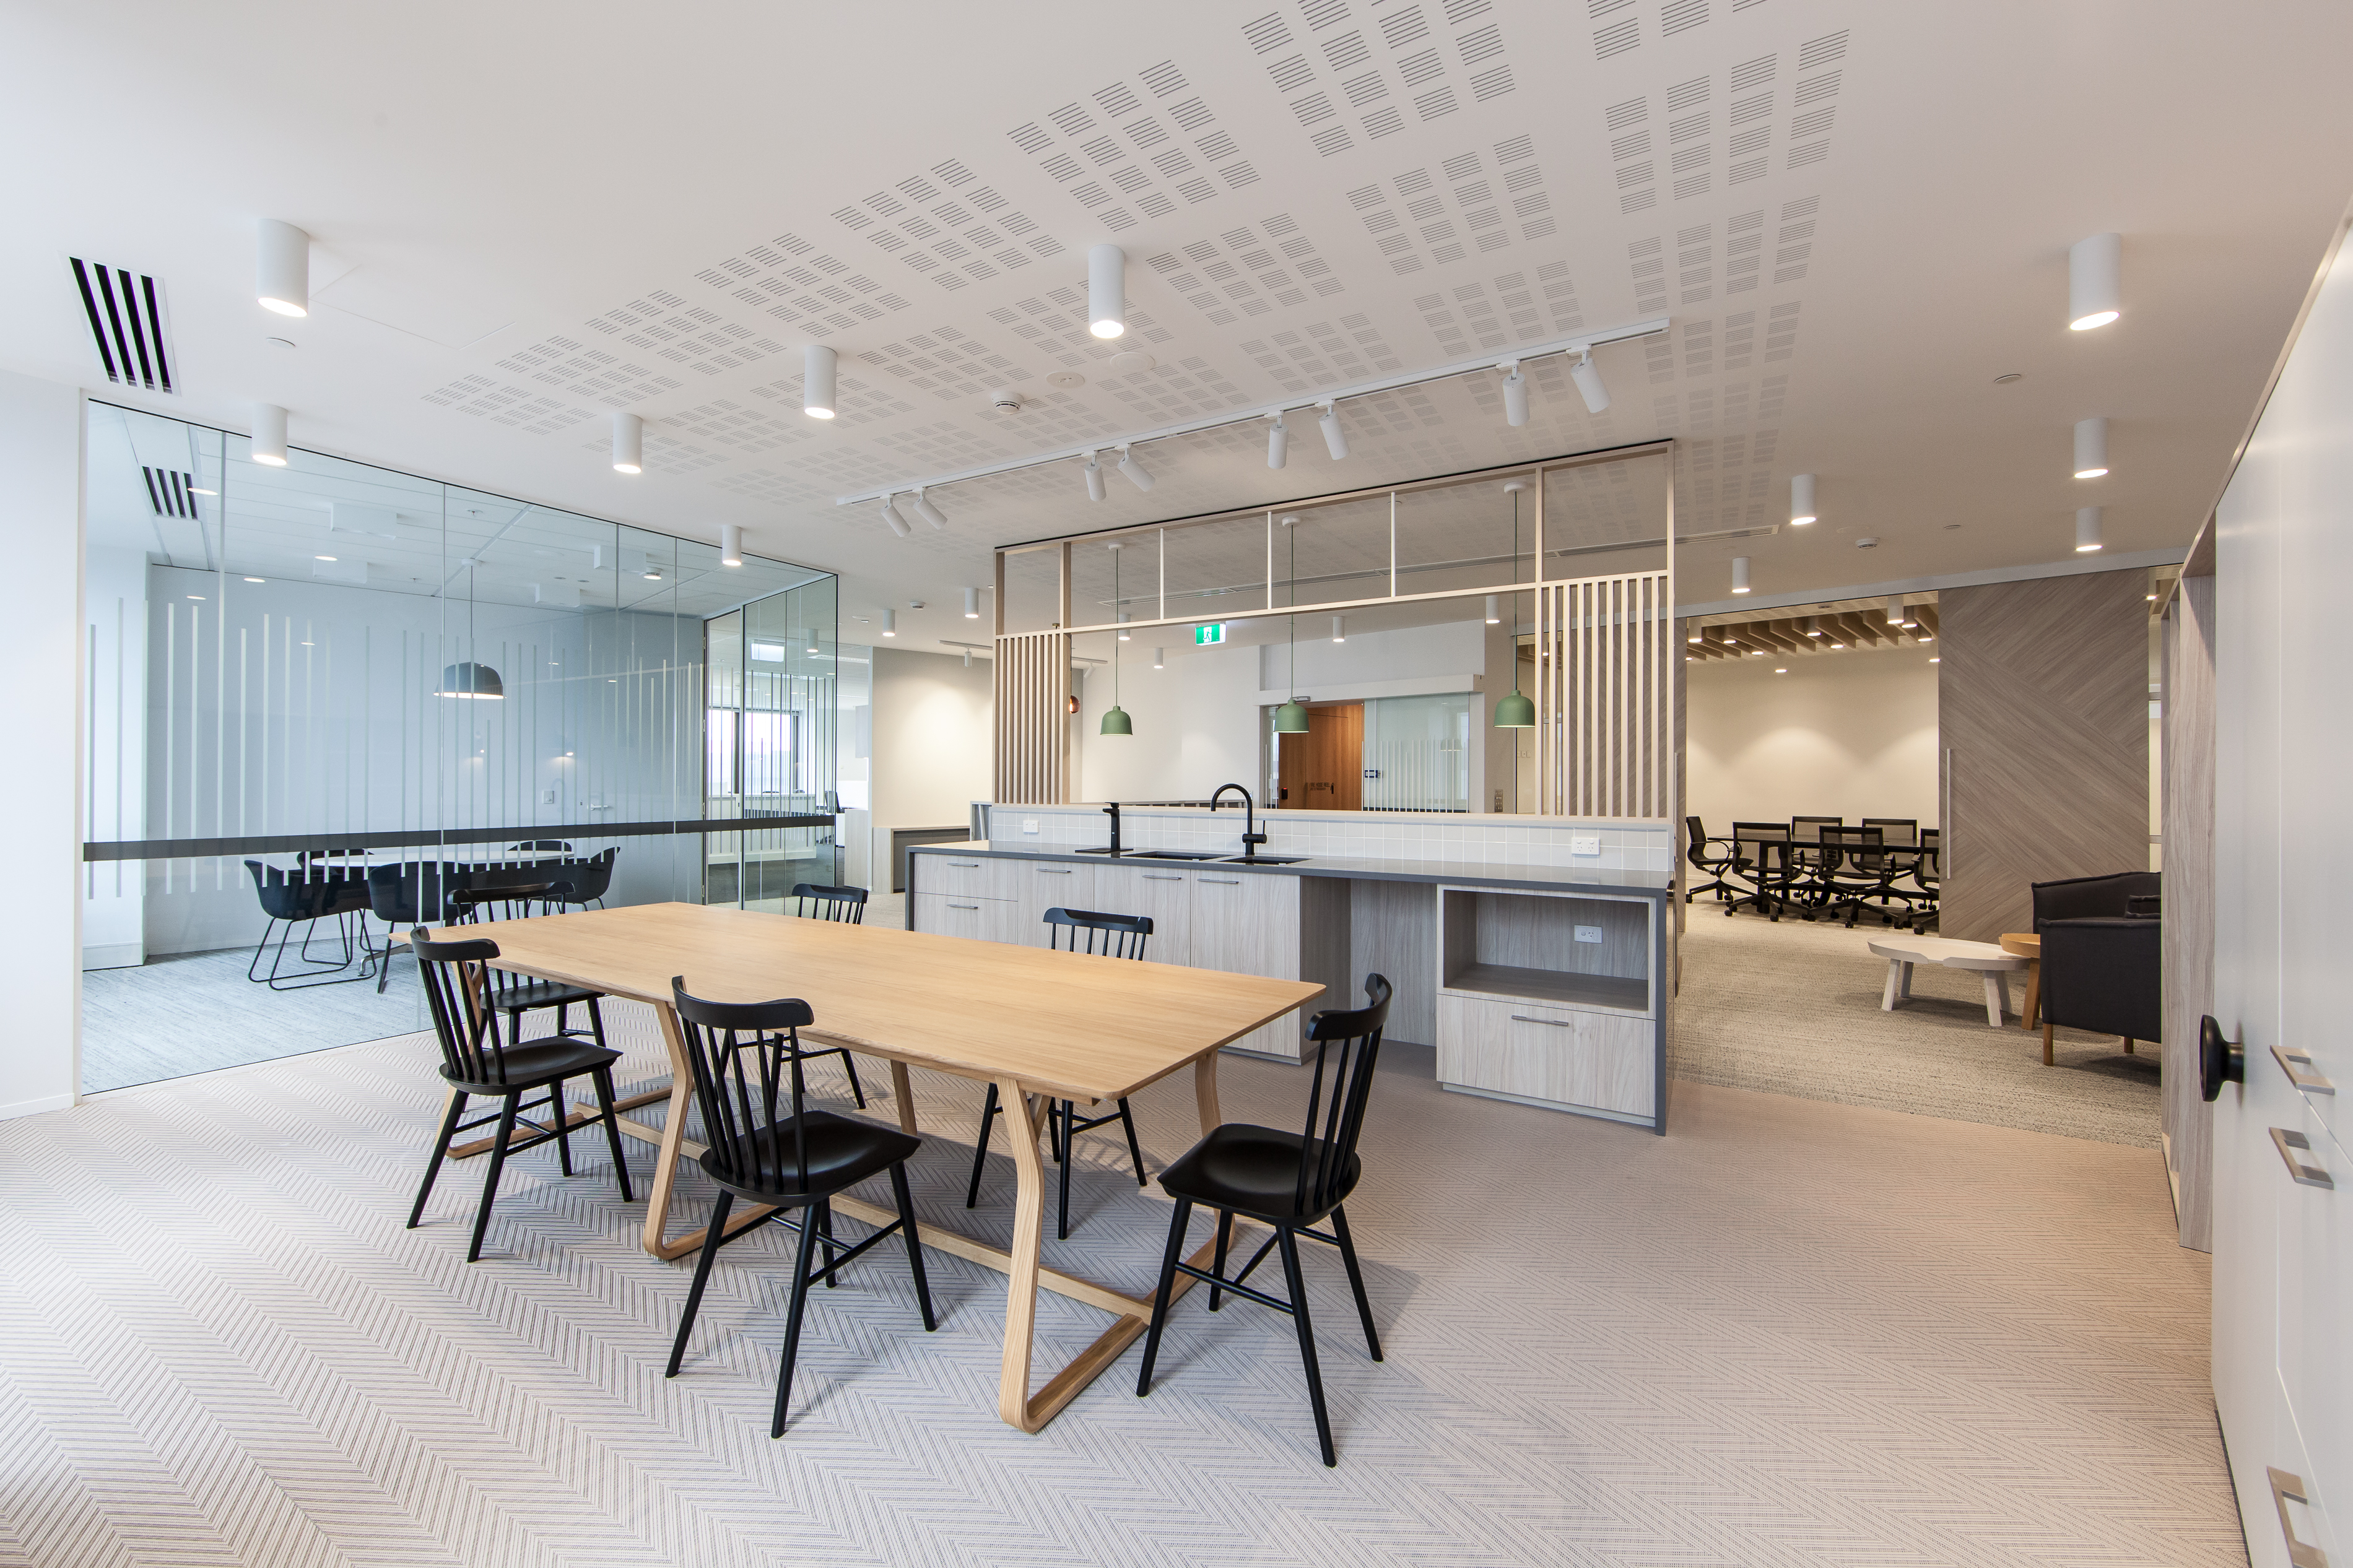 Office kitchen in wood and white tiling